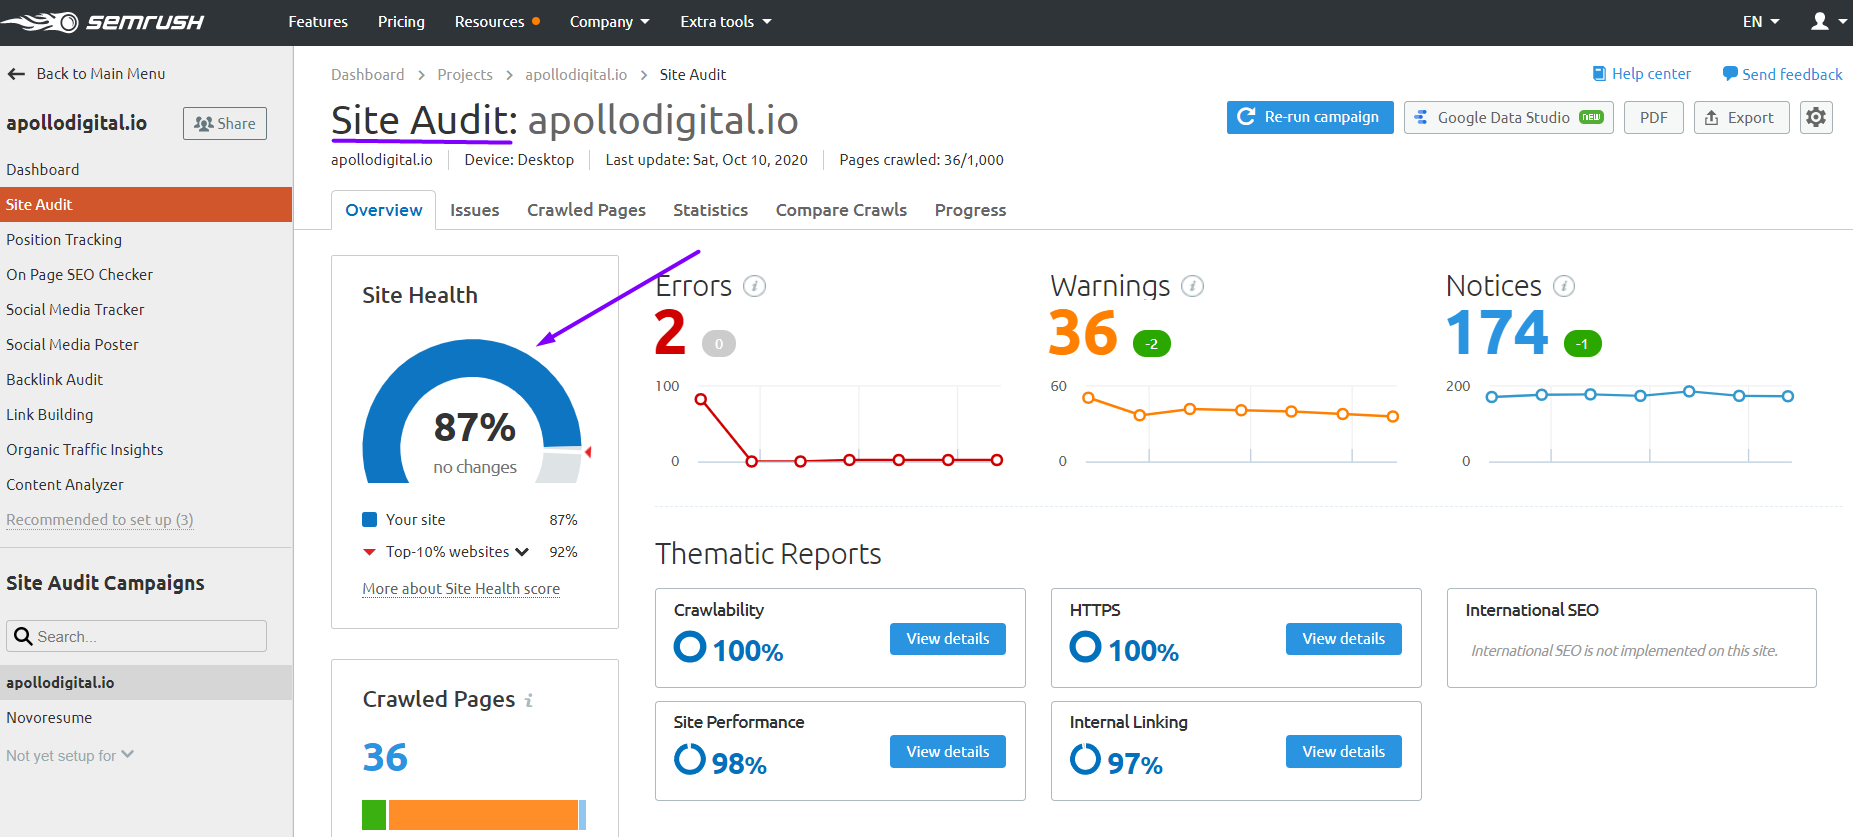 Site Audit using Semrush